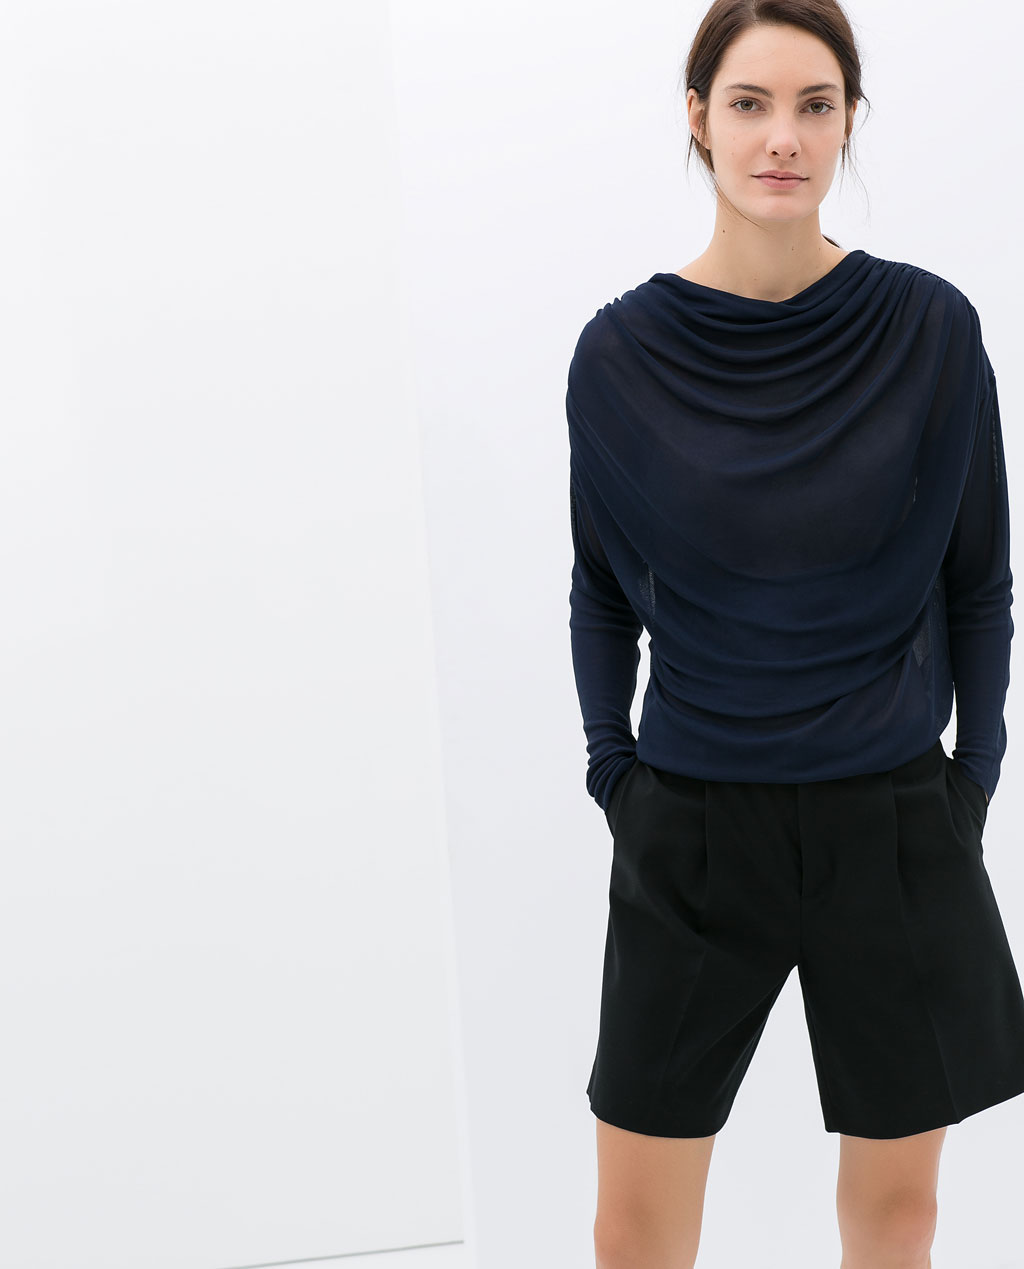 Zara Spring Summer Collection For Women 2014-2015 (10)